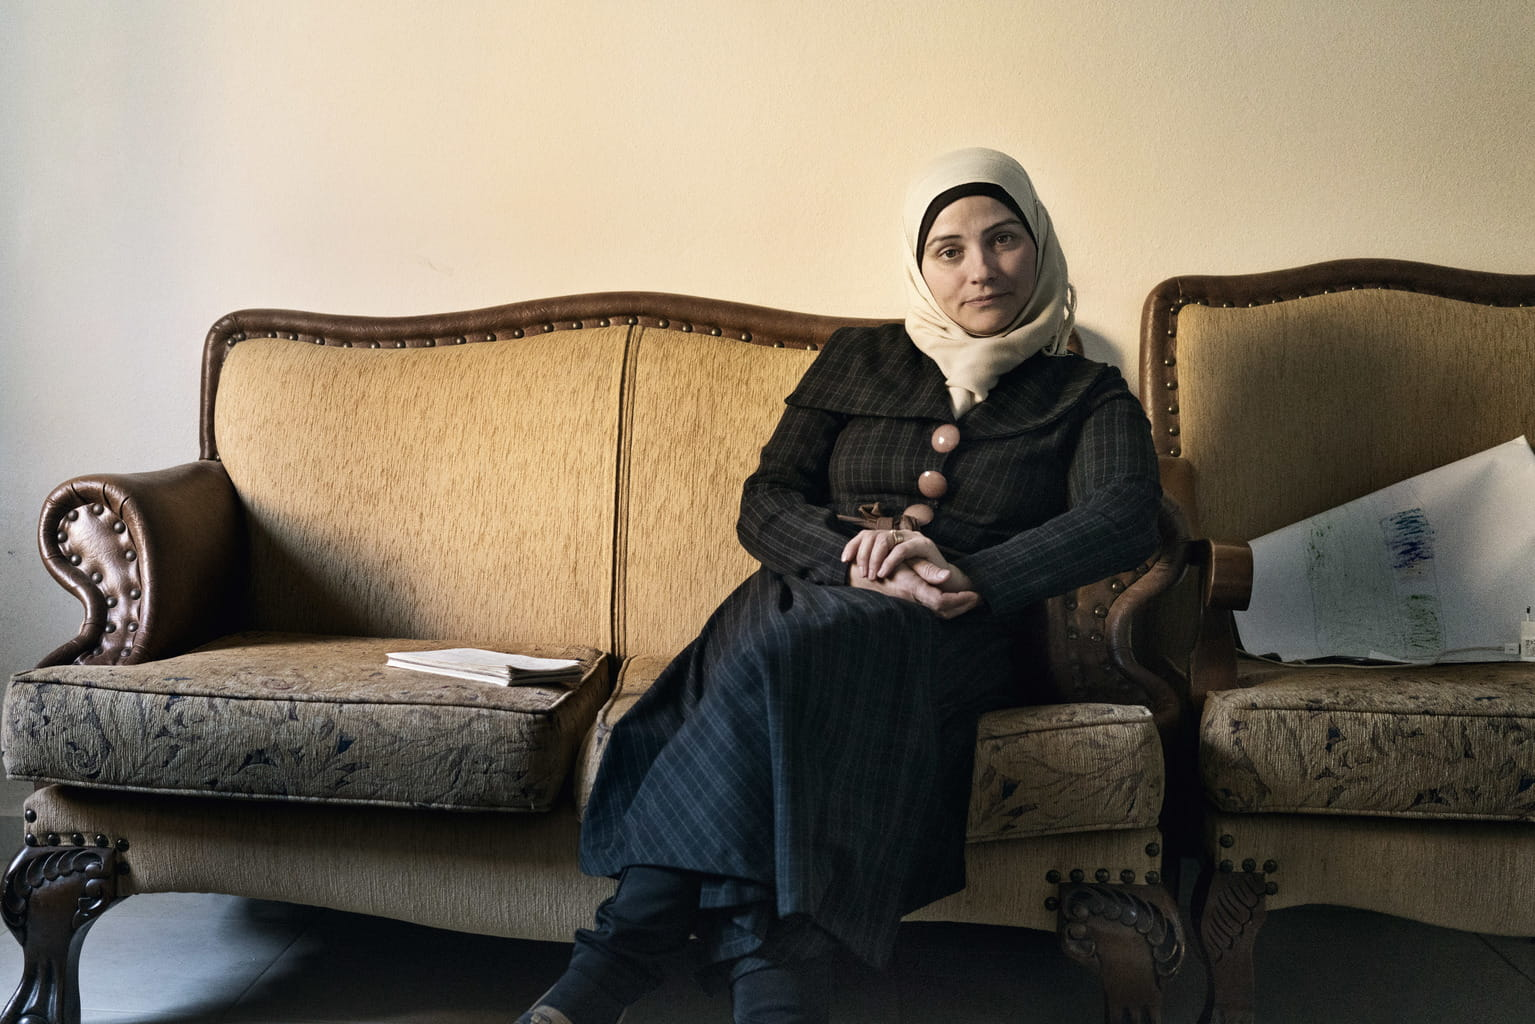 December 4, 2015, Reyhanli, Turkey. Psychologist Mirfat Suleiman, who specializes in Gender Based Violence (GBV) counseling.